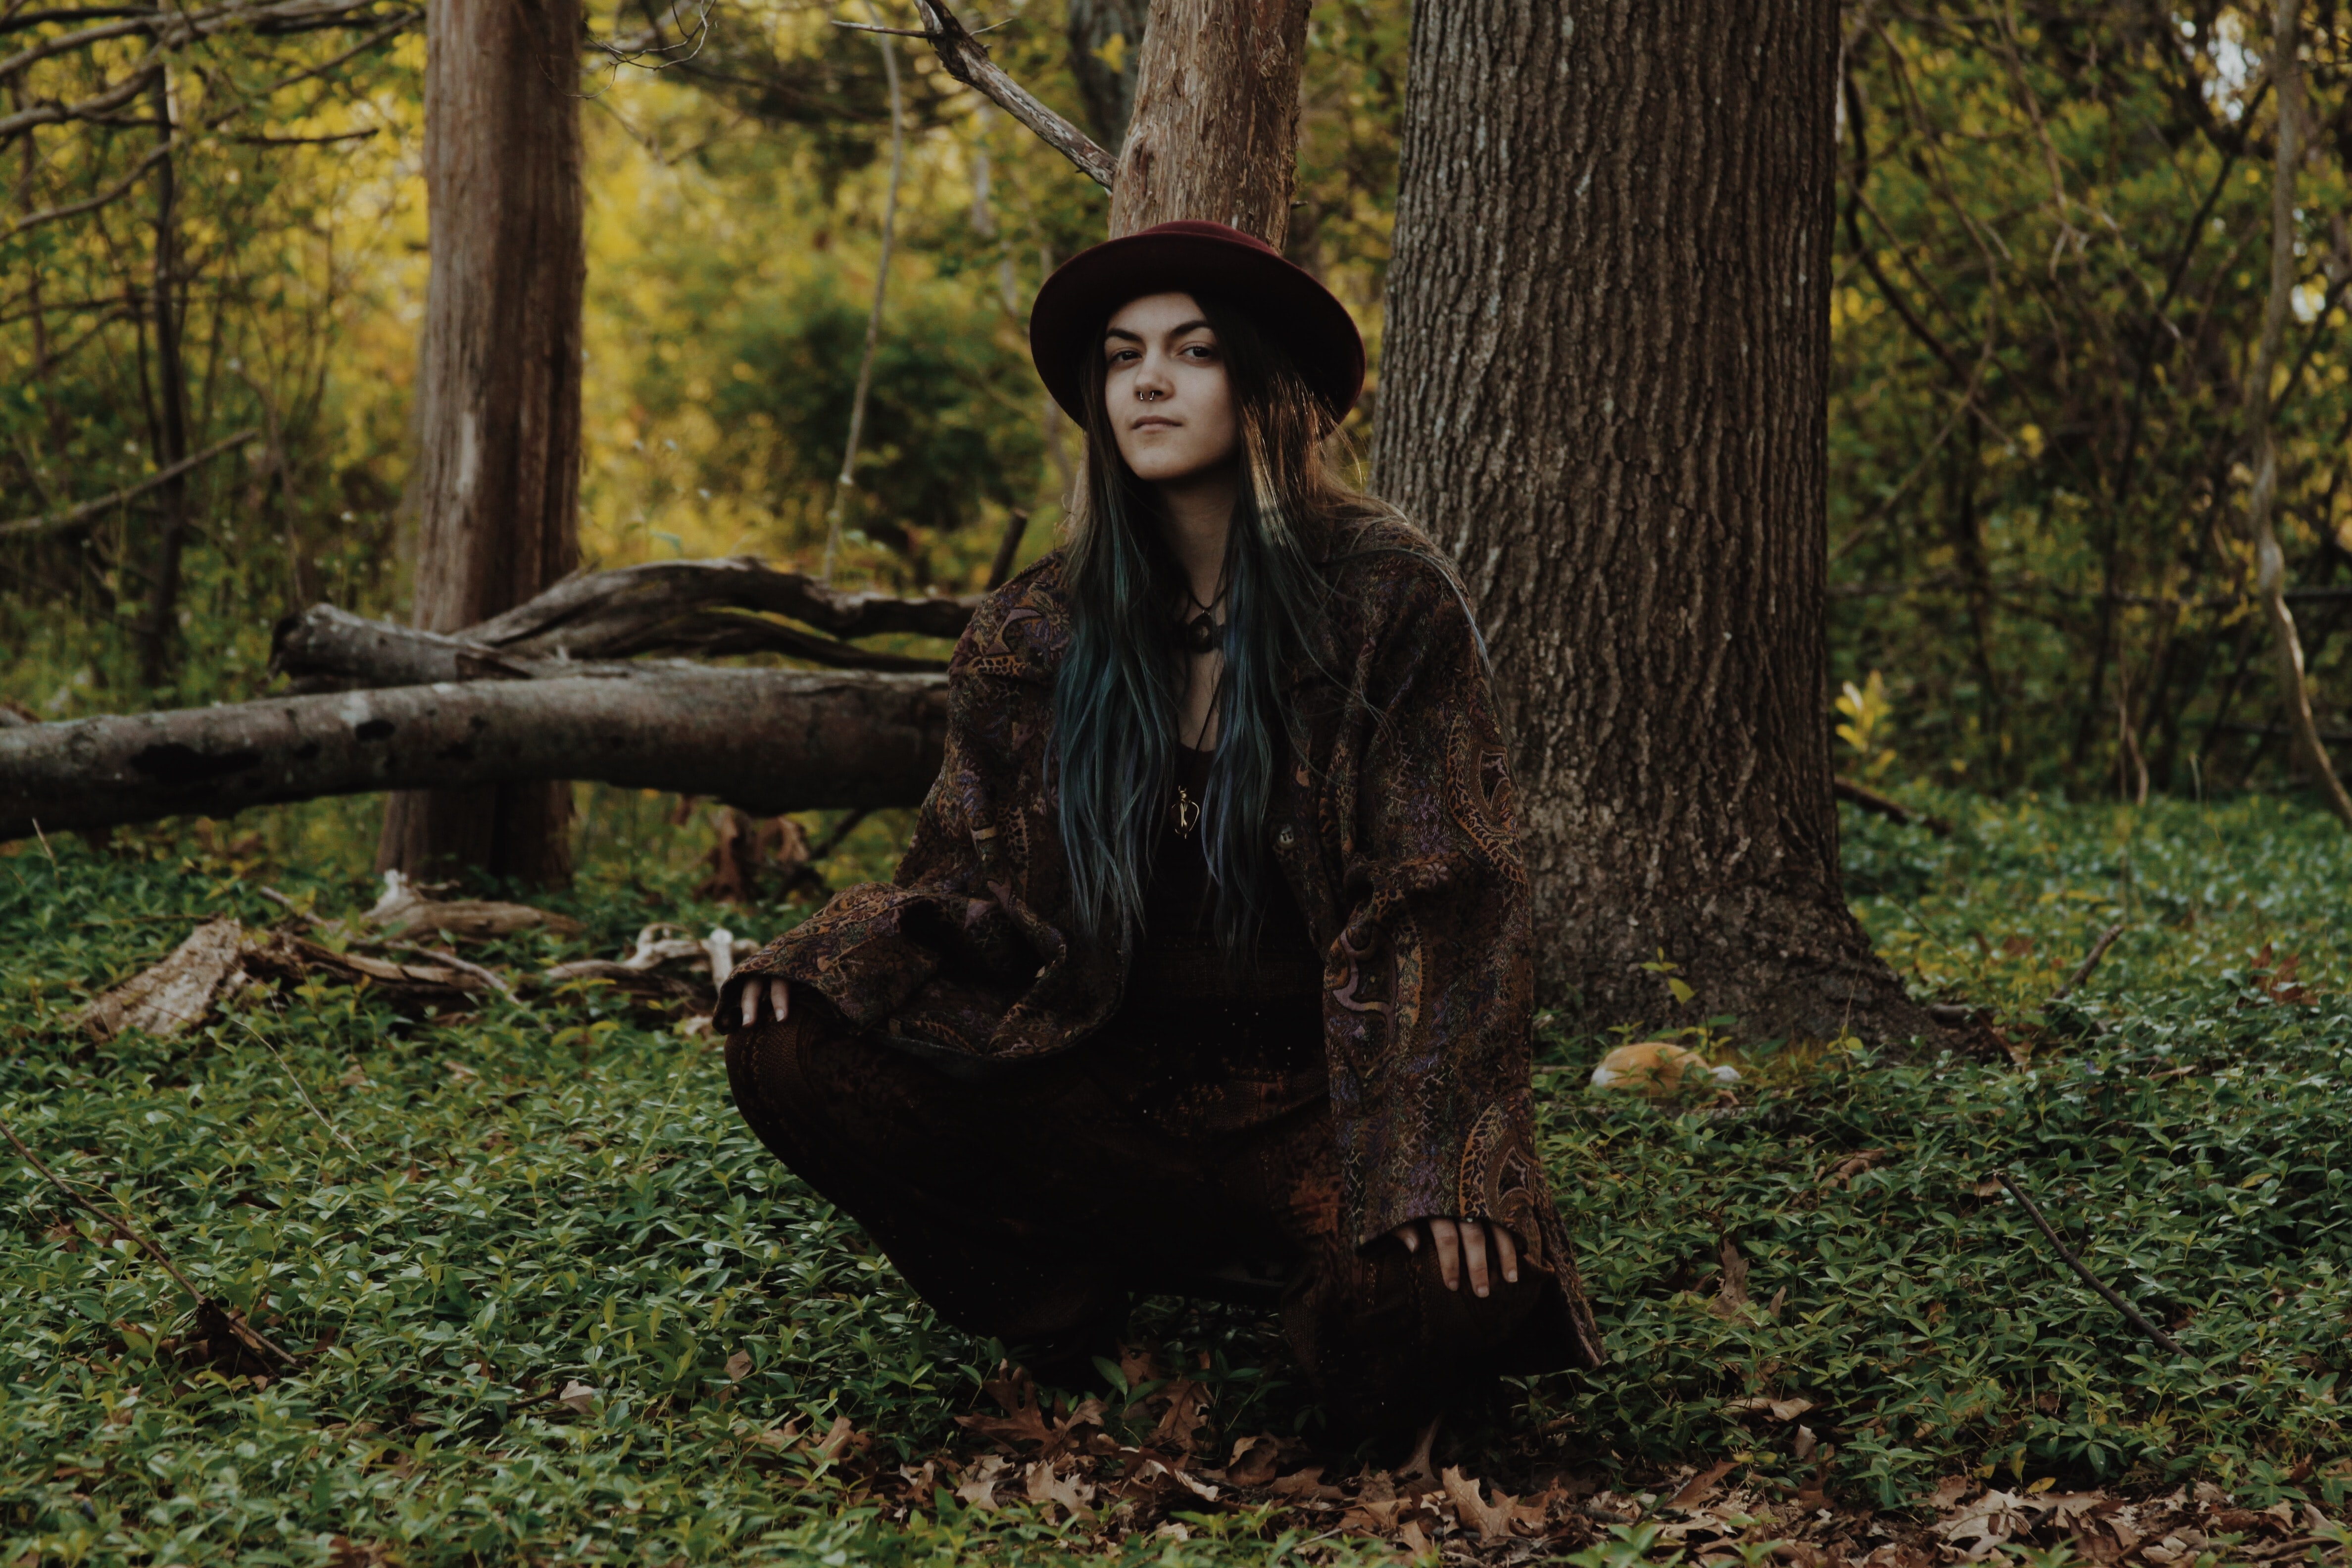 A young bohemian woman crouching under a tree in a forest